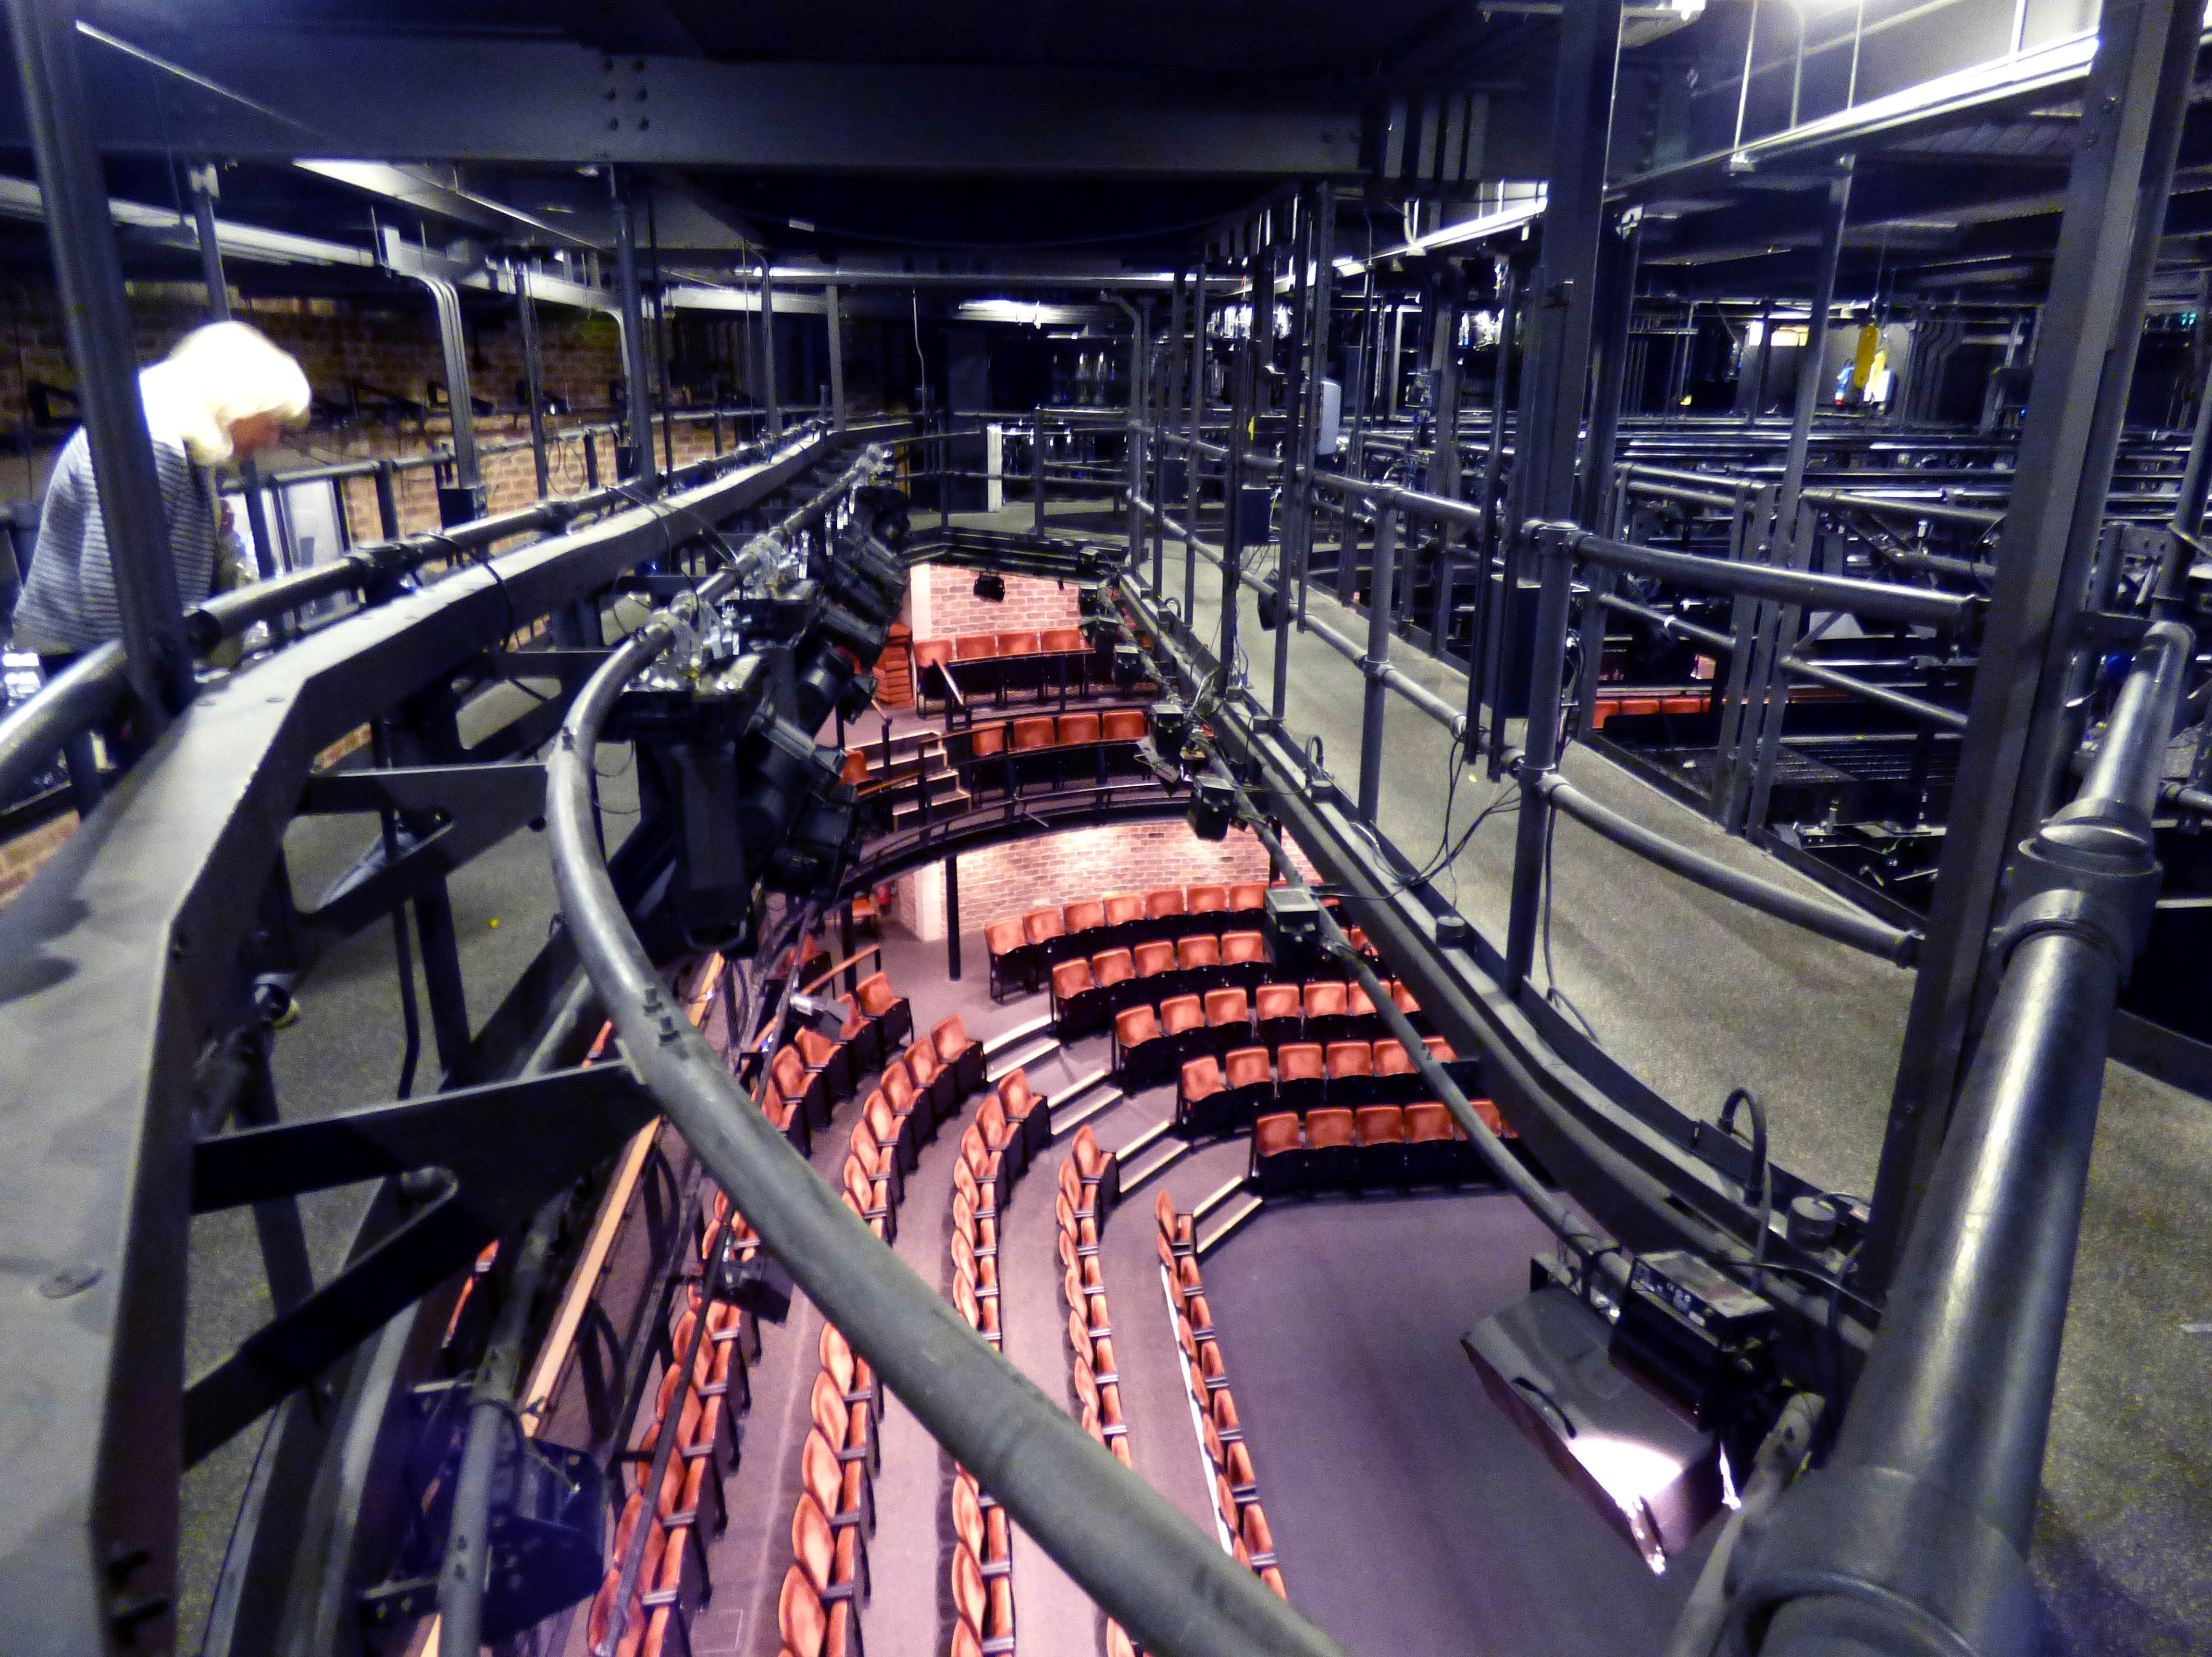 We are right above the stage in the lighting area of Everyman Theatre, Liverpool, July 2016